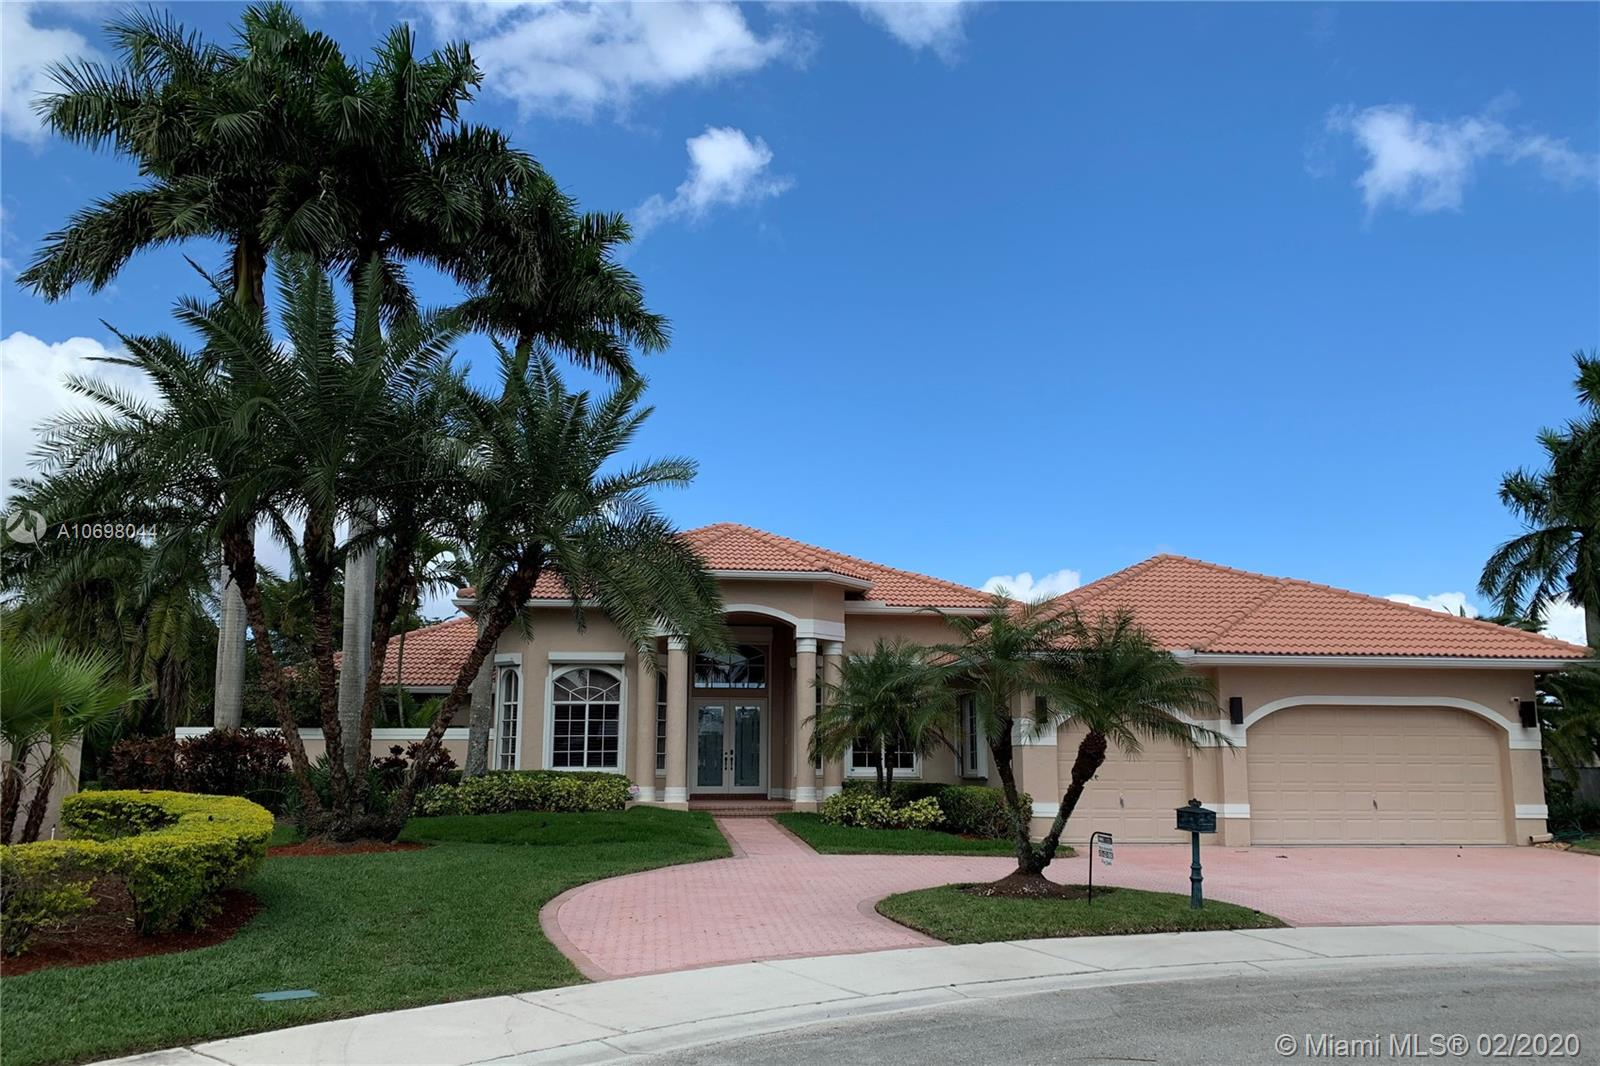 One of the most MAGNIFICENT VIEWS IN WESTON, in the PRESTIGIOUS WESTON HILLS COUNTRY CLUB. HUGE OVERSIZE LOT with 27,000 sq ft and 180-DEGREE BREATHTAKING LAKE AND GOLF VIEWS. Located in a CUL-DE-SAC in the premier section of Poinciana. Live the perfect lifestyle in this spectacular home, with an open concept floorplan and very high ceilings. Windows in every room allows for beautiful natural light and gorgeous views throughout the home. Very tranquil and private outside area, with a huge screened pool/patio enclosure. Master suite with spacious custom closets and a special feature: His and Hers master bathrooms. Circular driveway. Accordion shutters. Access to excellent A-RATED PUBLIC SCHOOLS. RENDERINGS WITH PROPOSED DESIGN INCLUDED. THIS PROPERTY IS UNIQUE AND A MUST SEE!